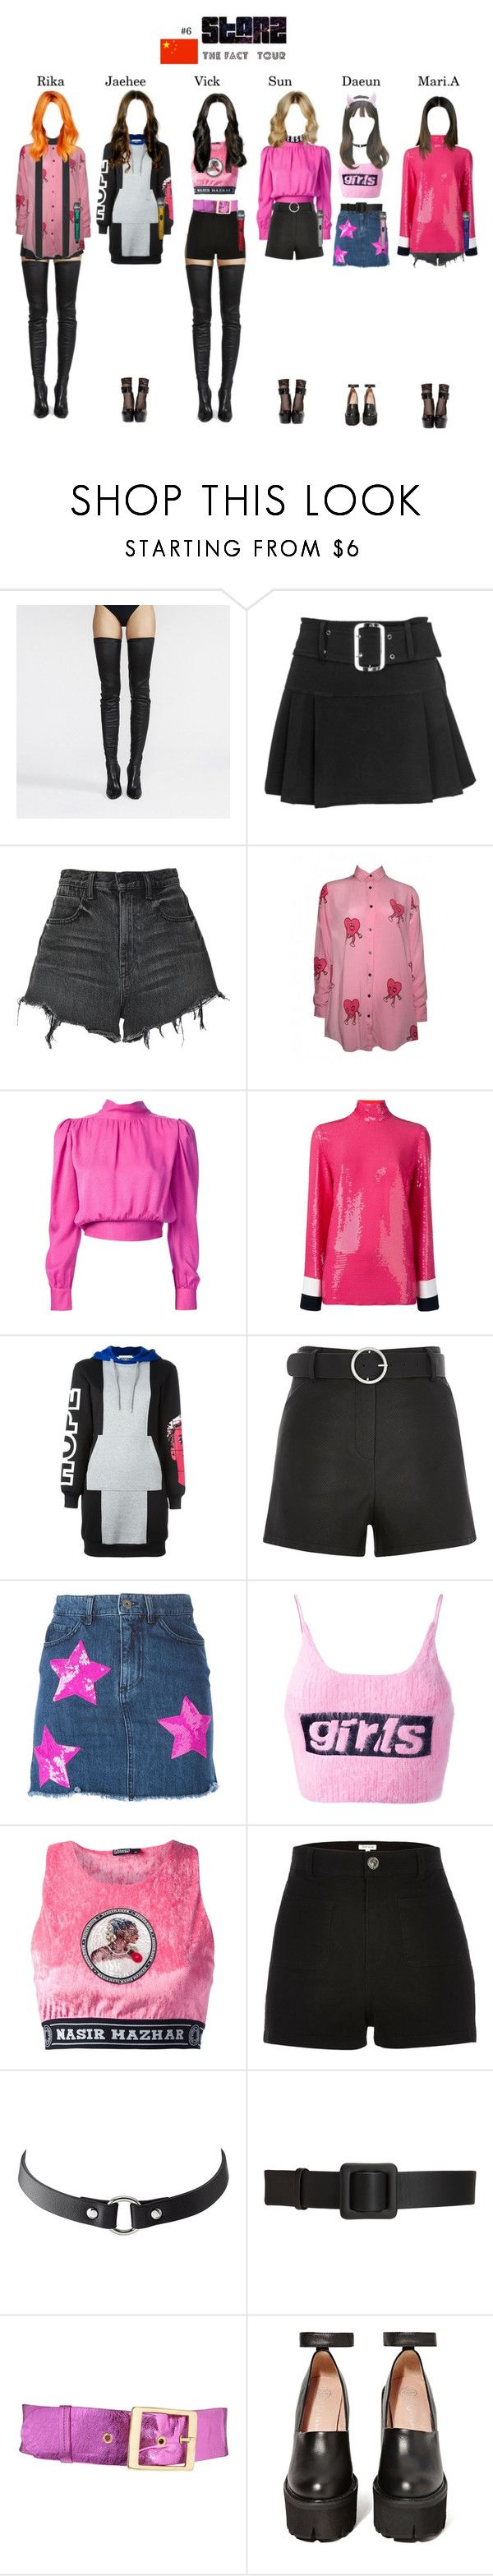 """""""THE FACT TOUR    Hong Kong, China"""" by starz-official on Polyvore featuring Alexander Wang, Lazy Oaf, Yves Saint Laurent, Emilio Pucci, Moschino, Black, Au Jour Le Jour, Nasir Mazhar, River Island and Charlotte Russe"""